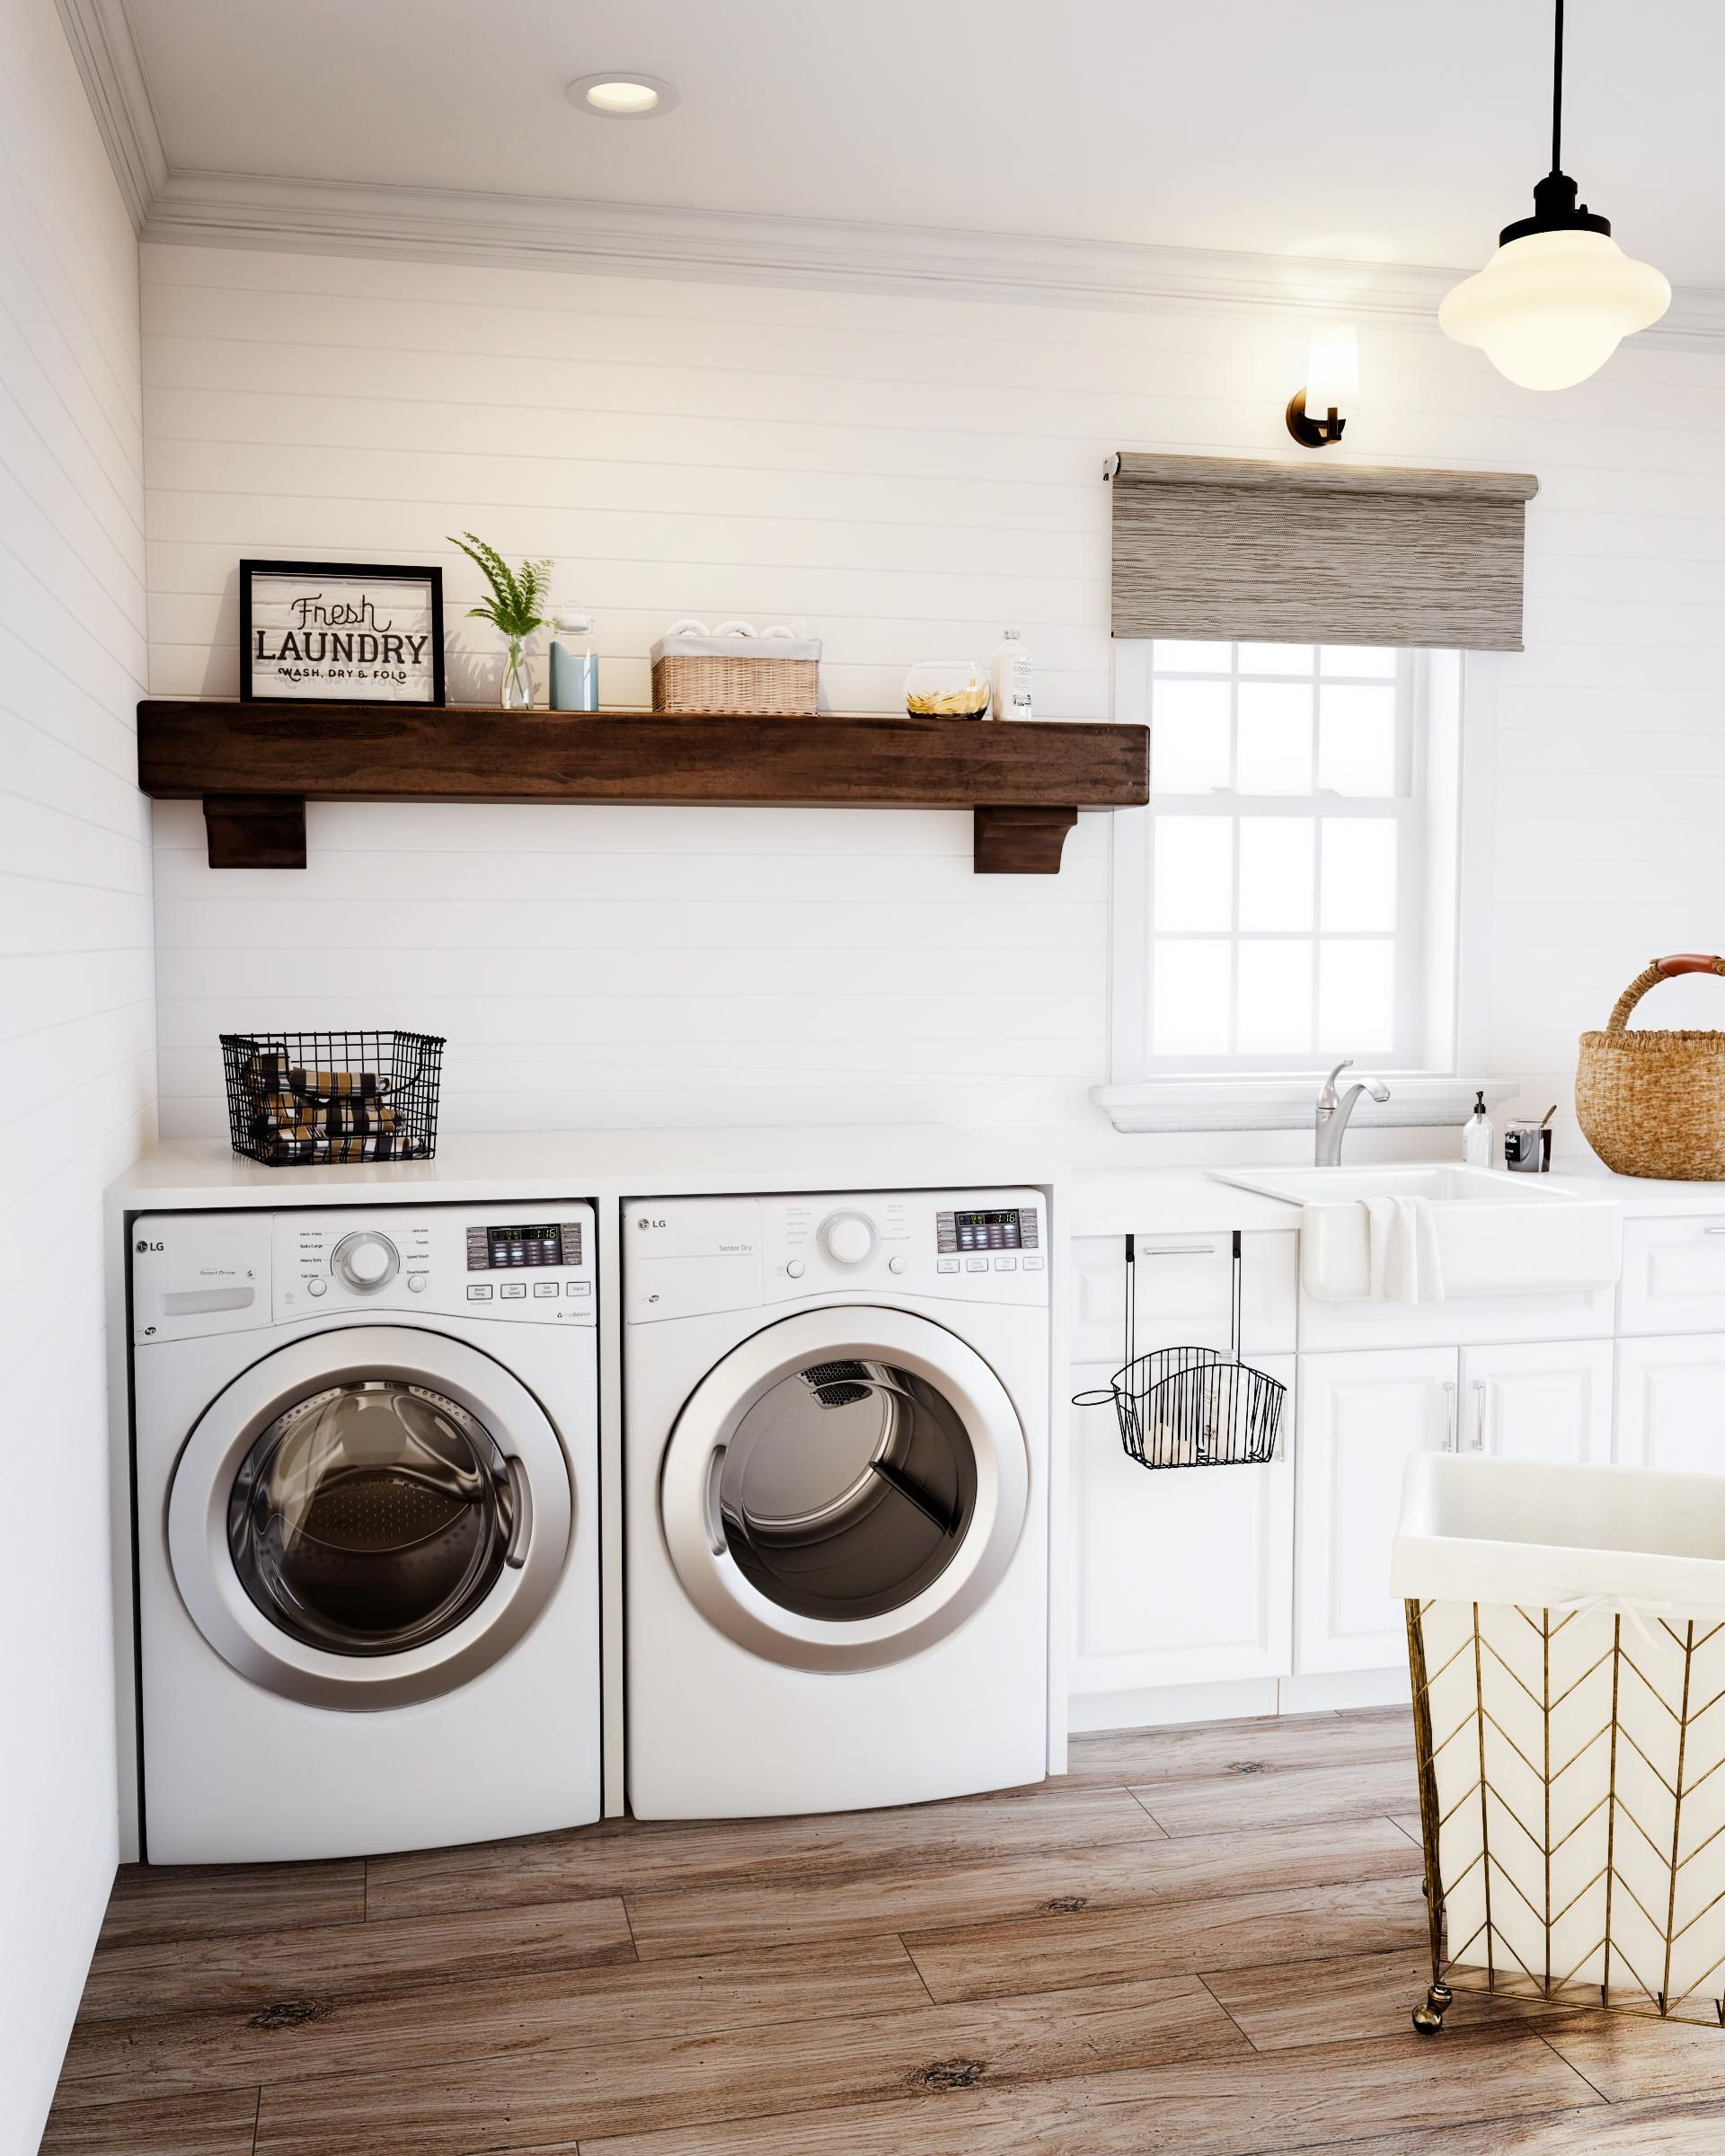 17 laundry room cabinet ideas to maximize your home space on extraordinary small laundry room design and decorating ideas modest laundry space id=65705